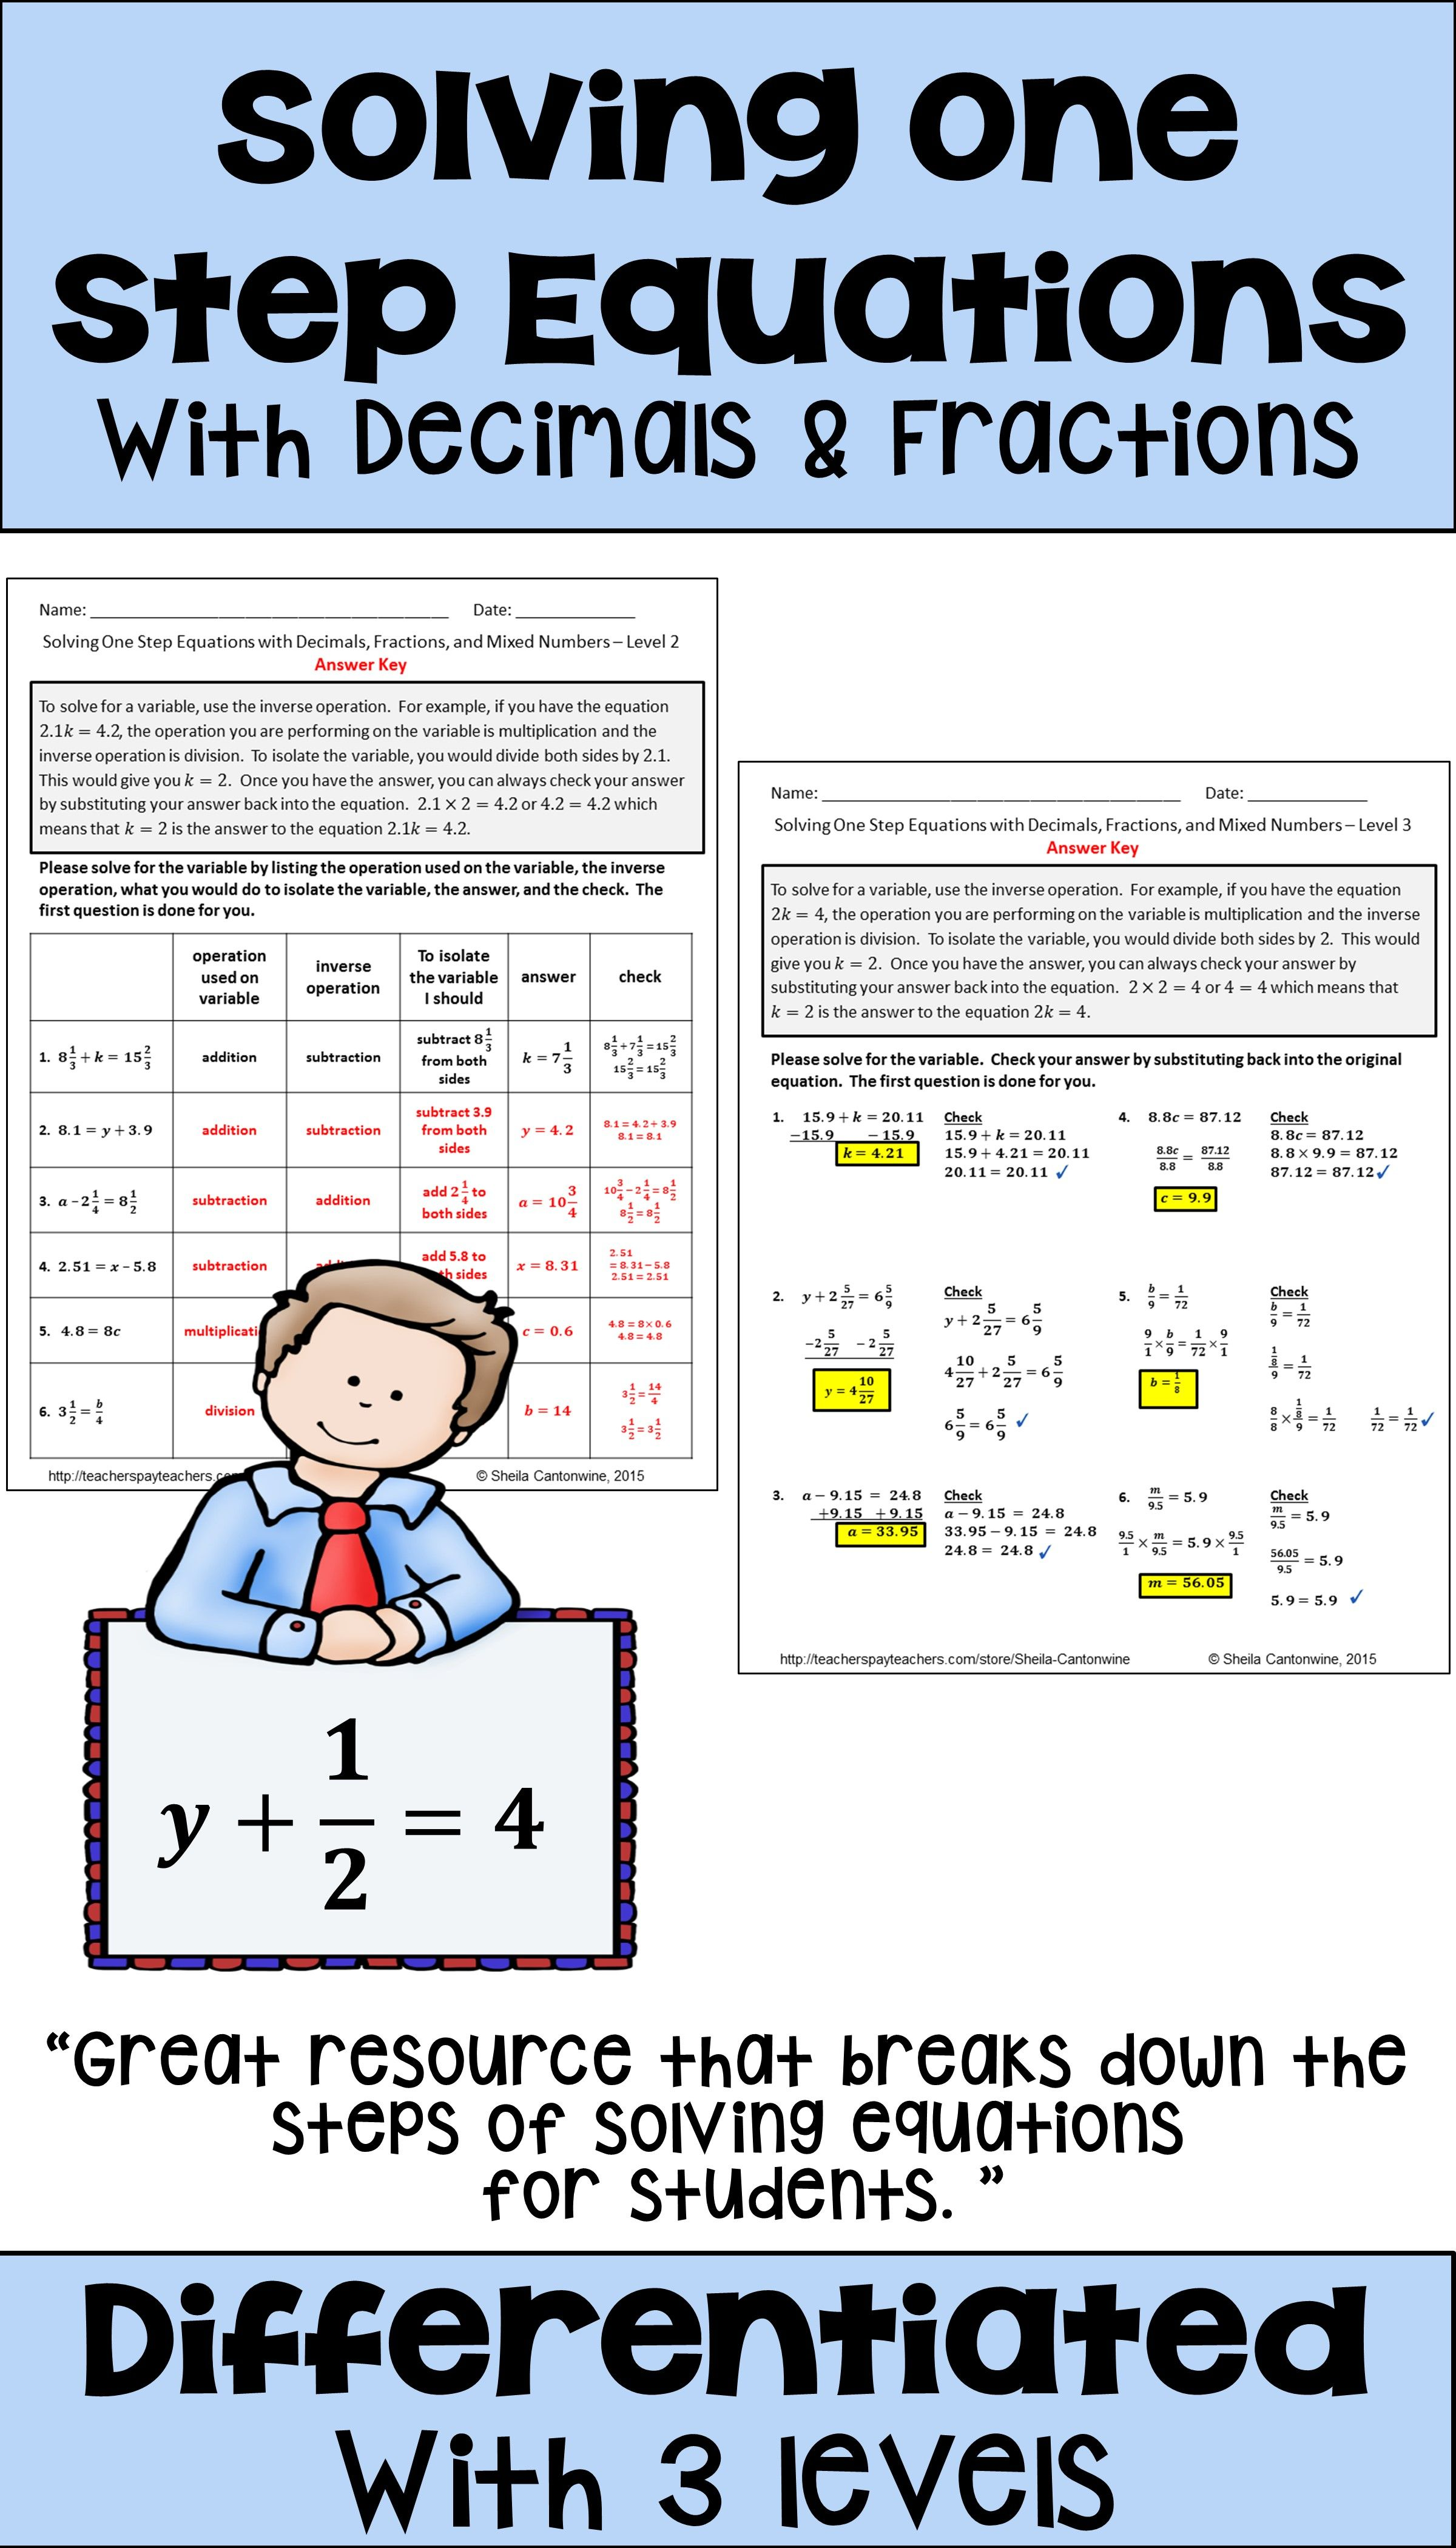 Solving 1 Step Equations With Decimals And Fractions One Step Equations Fractions Equations